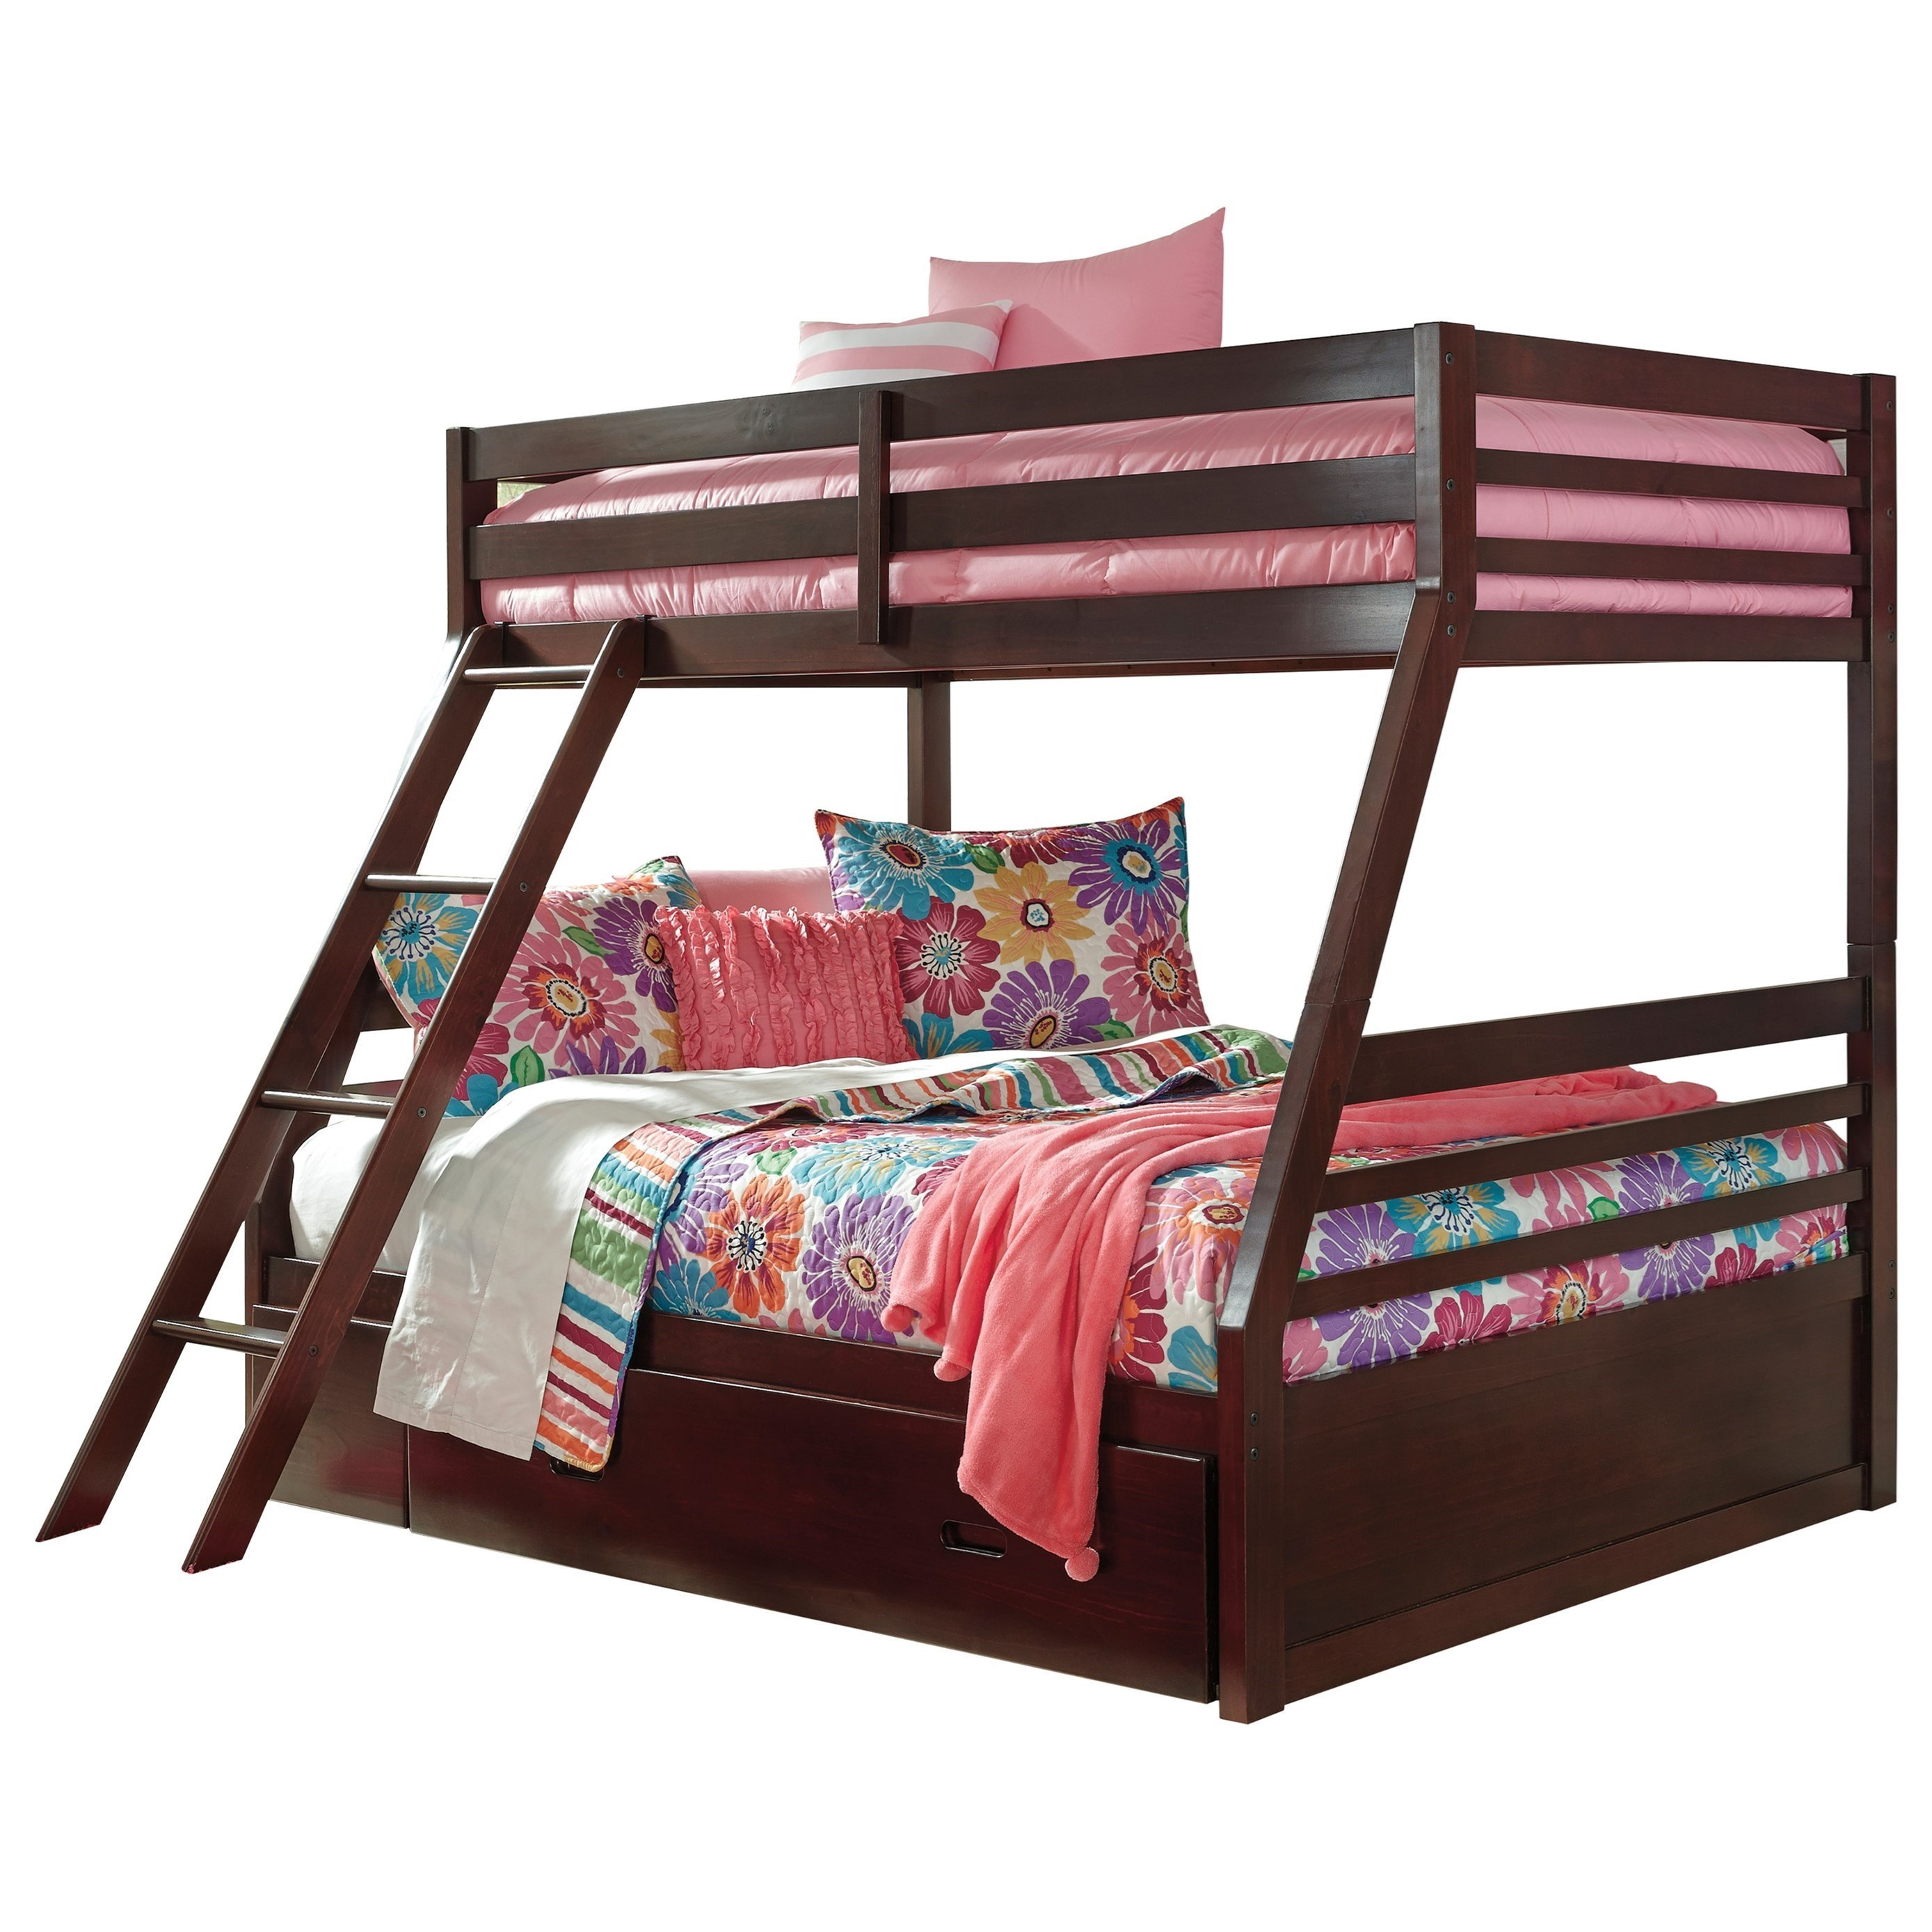 Image of: Signature Design By Ashley Halanton Solid Pine Twin Full Bunk Bed W Under Bed Storage Royal Furniture Bunk Beds